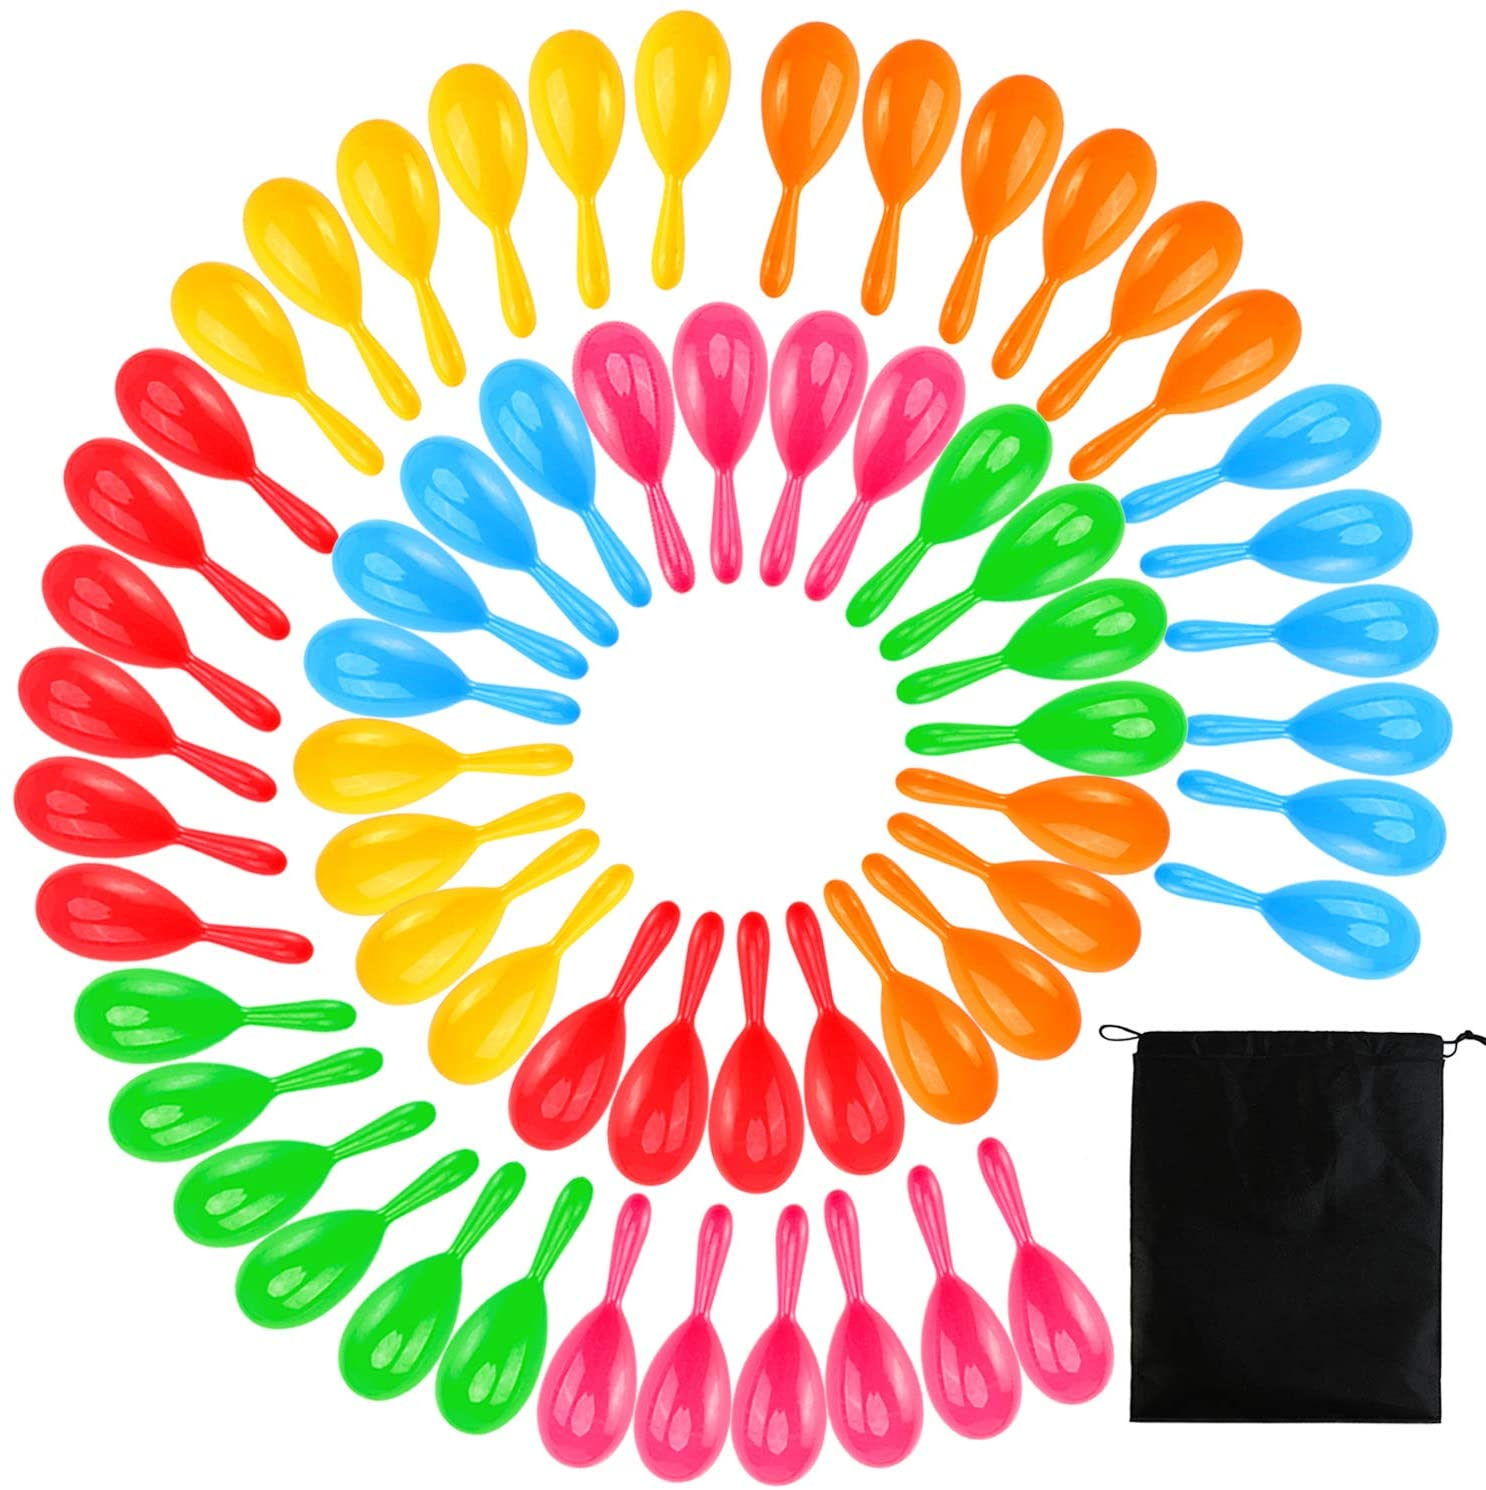 Ruisita 60 Pack Neon Maracas Shakers Noisemaker Mexican 6 Color Mini Maracas Bulk Bright Colorful Noise Maker with Drawstring Bag for Mexican Fiesta Party Favors, 4 Inch